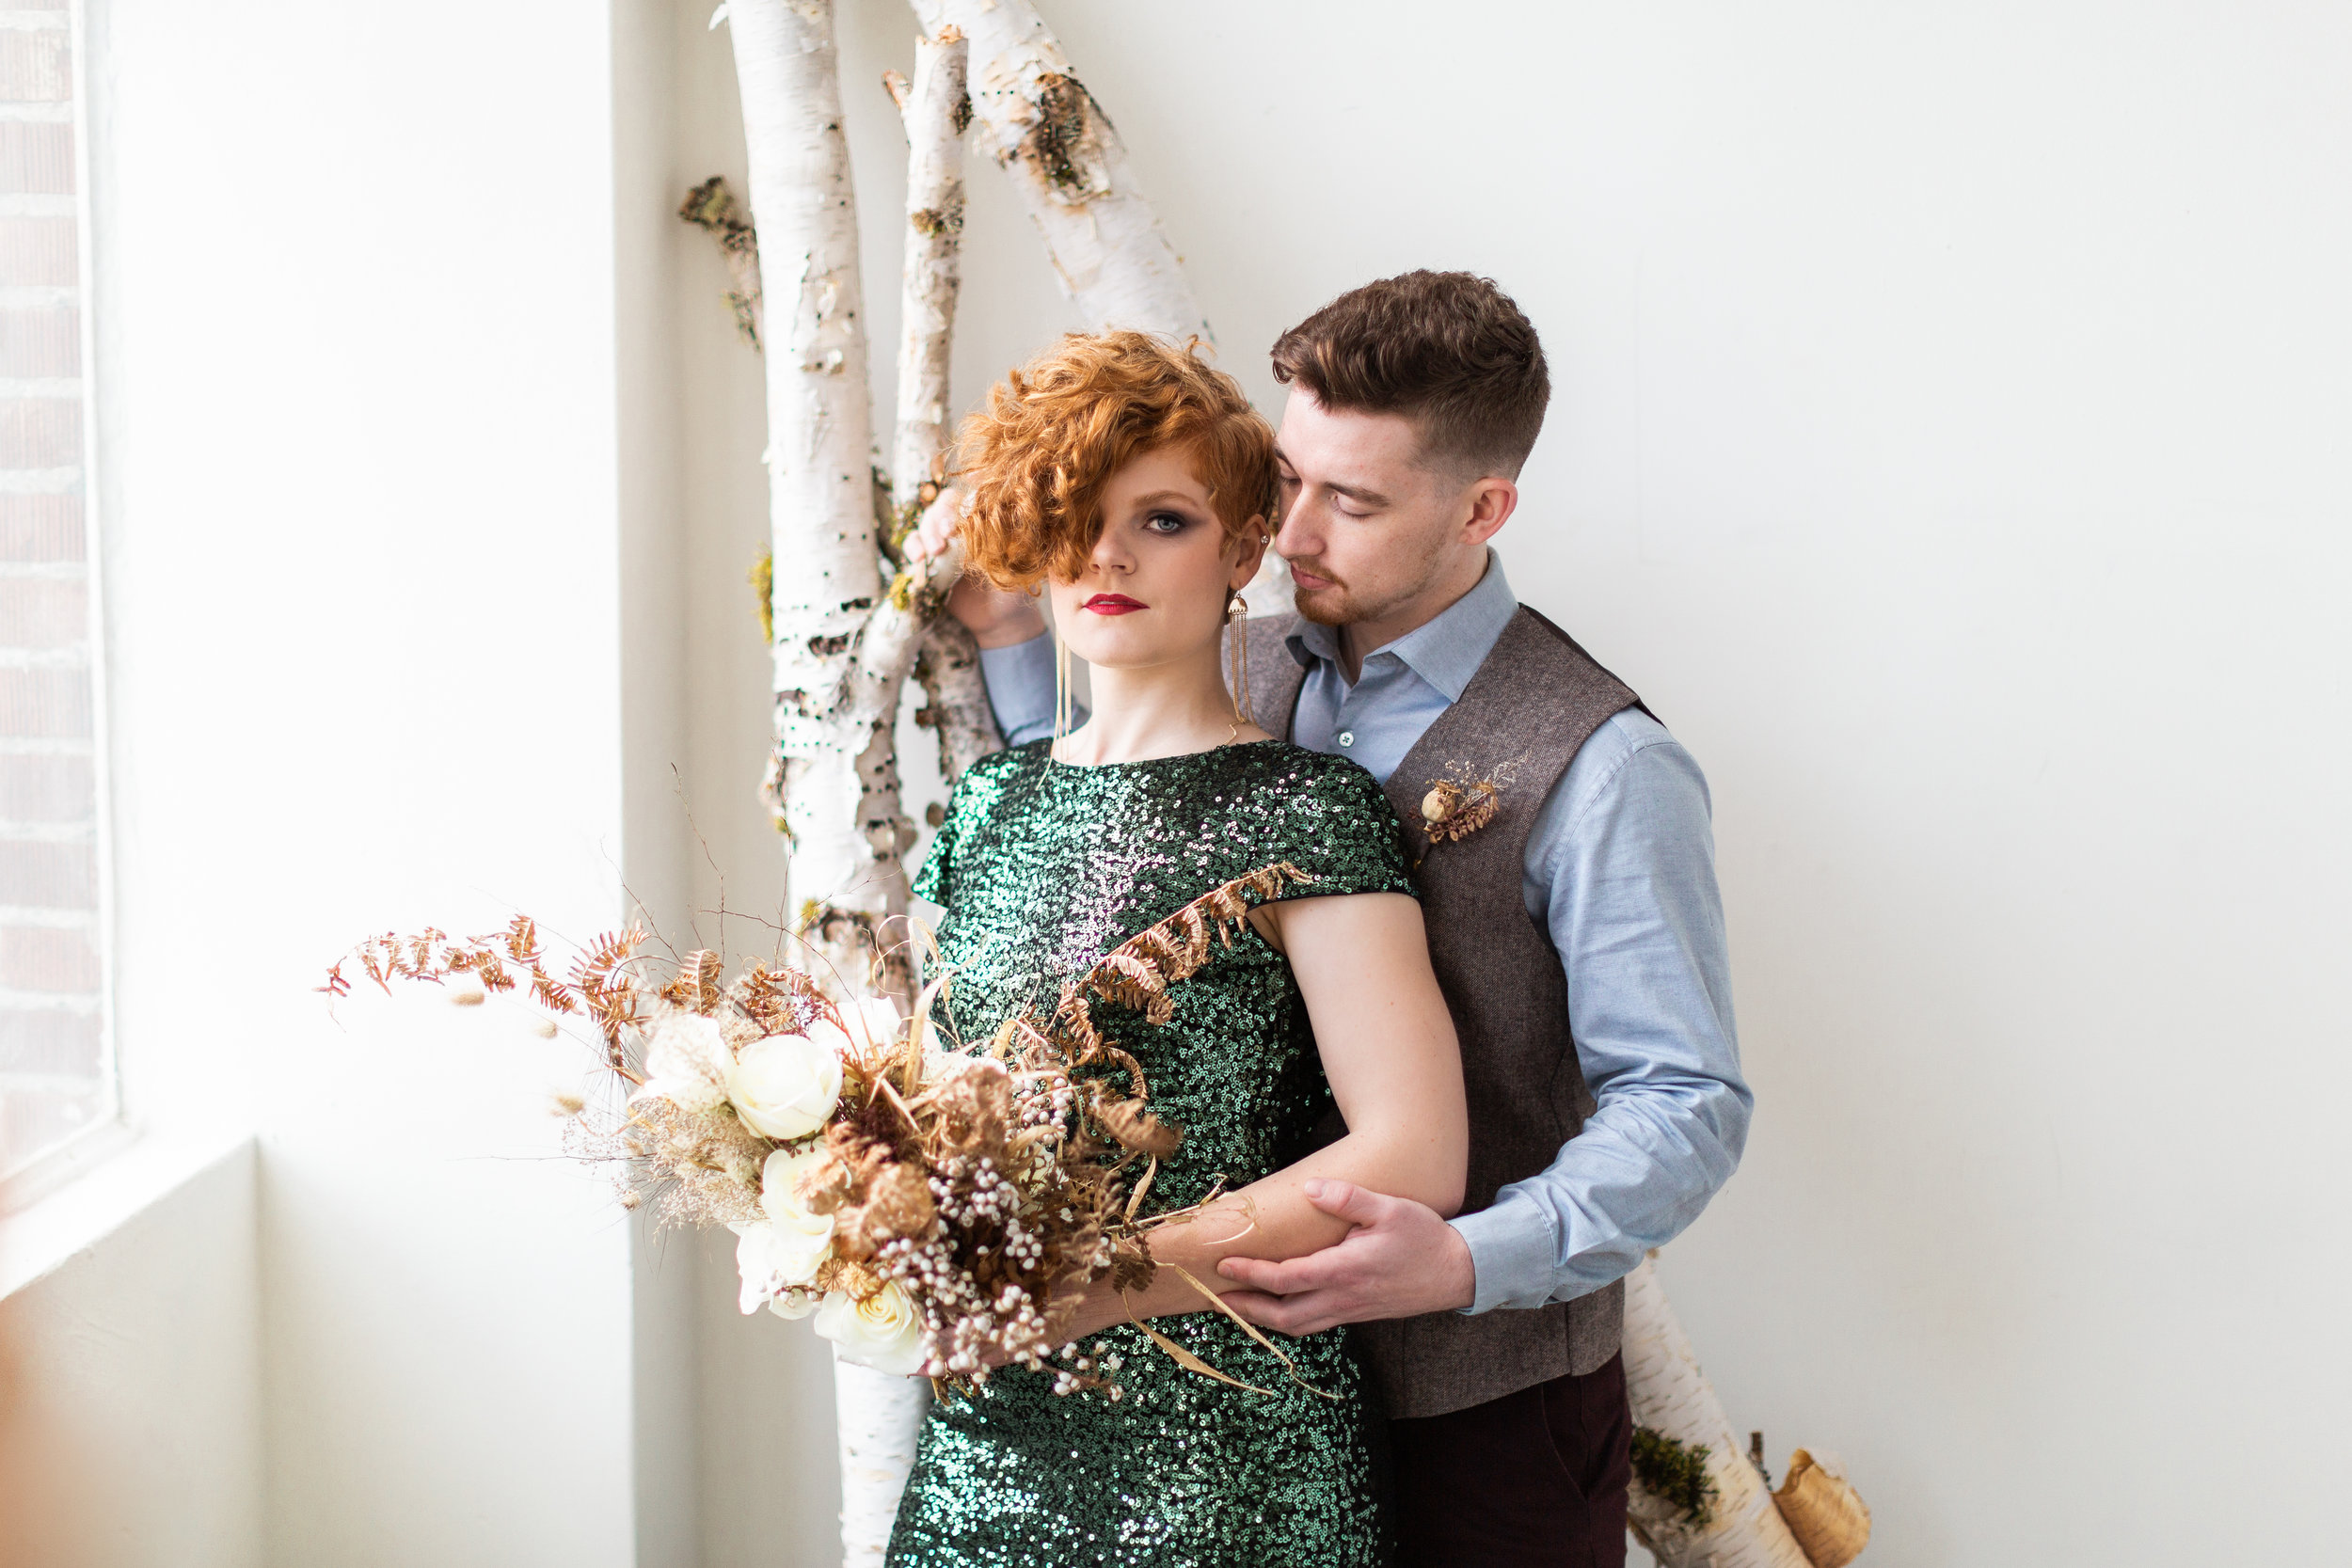 seattle washington styled shoot-yay parties-bethany yackel beauty-clary sage studio-sift and gather-stacia joy-janelle elaine photography-19.jpg